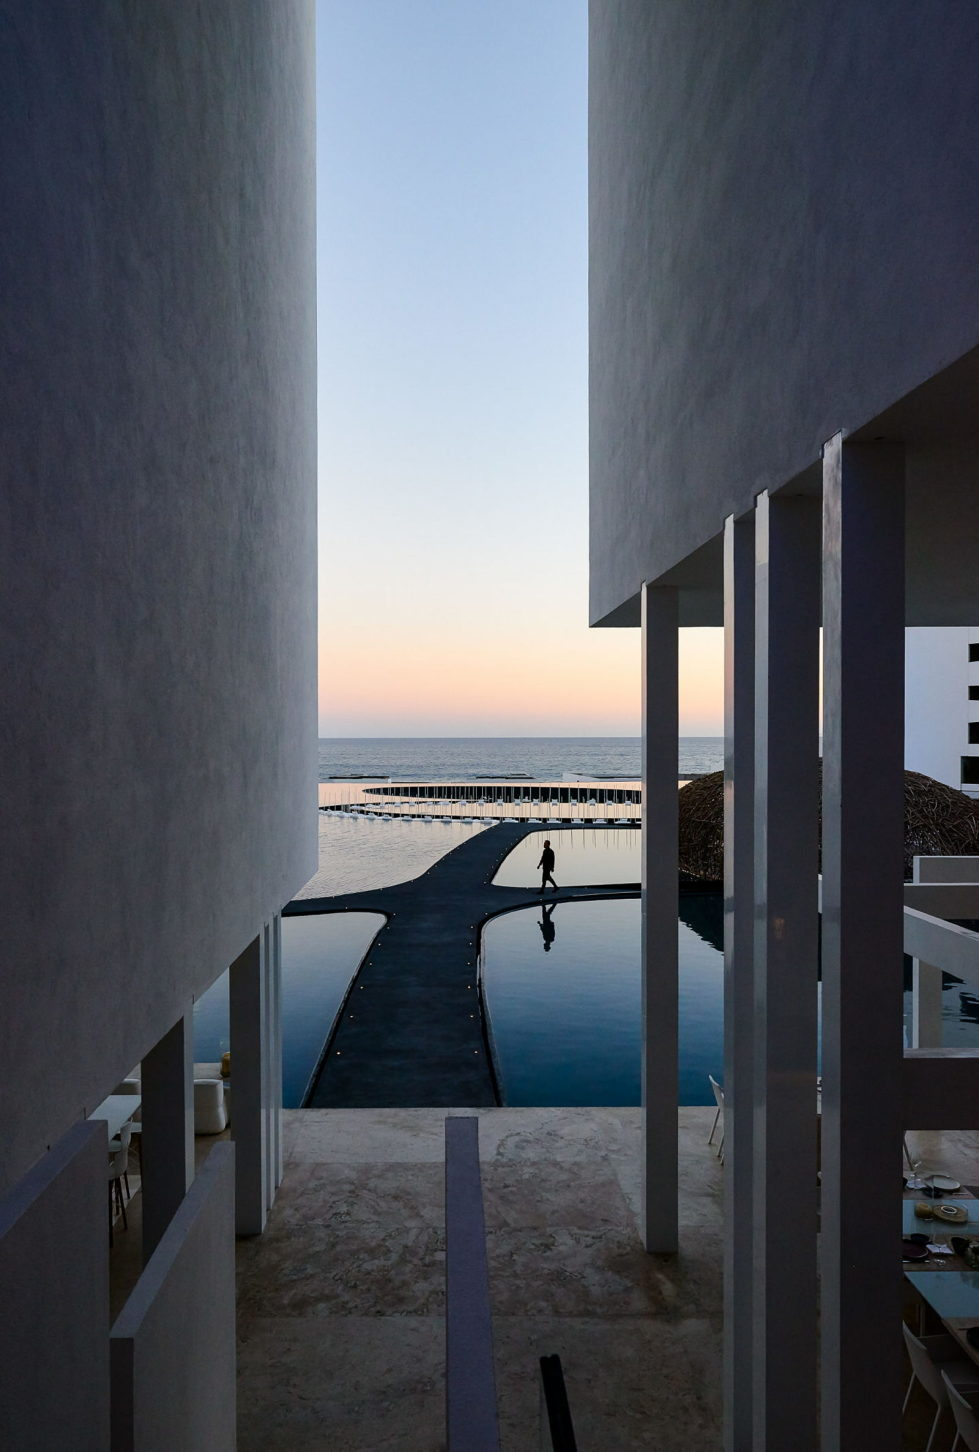 Mar Adentro The Amazig White Hotel In Mexico 2